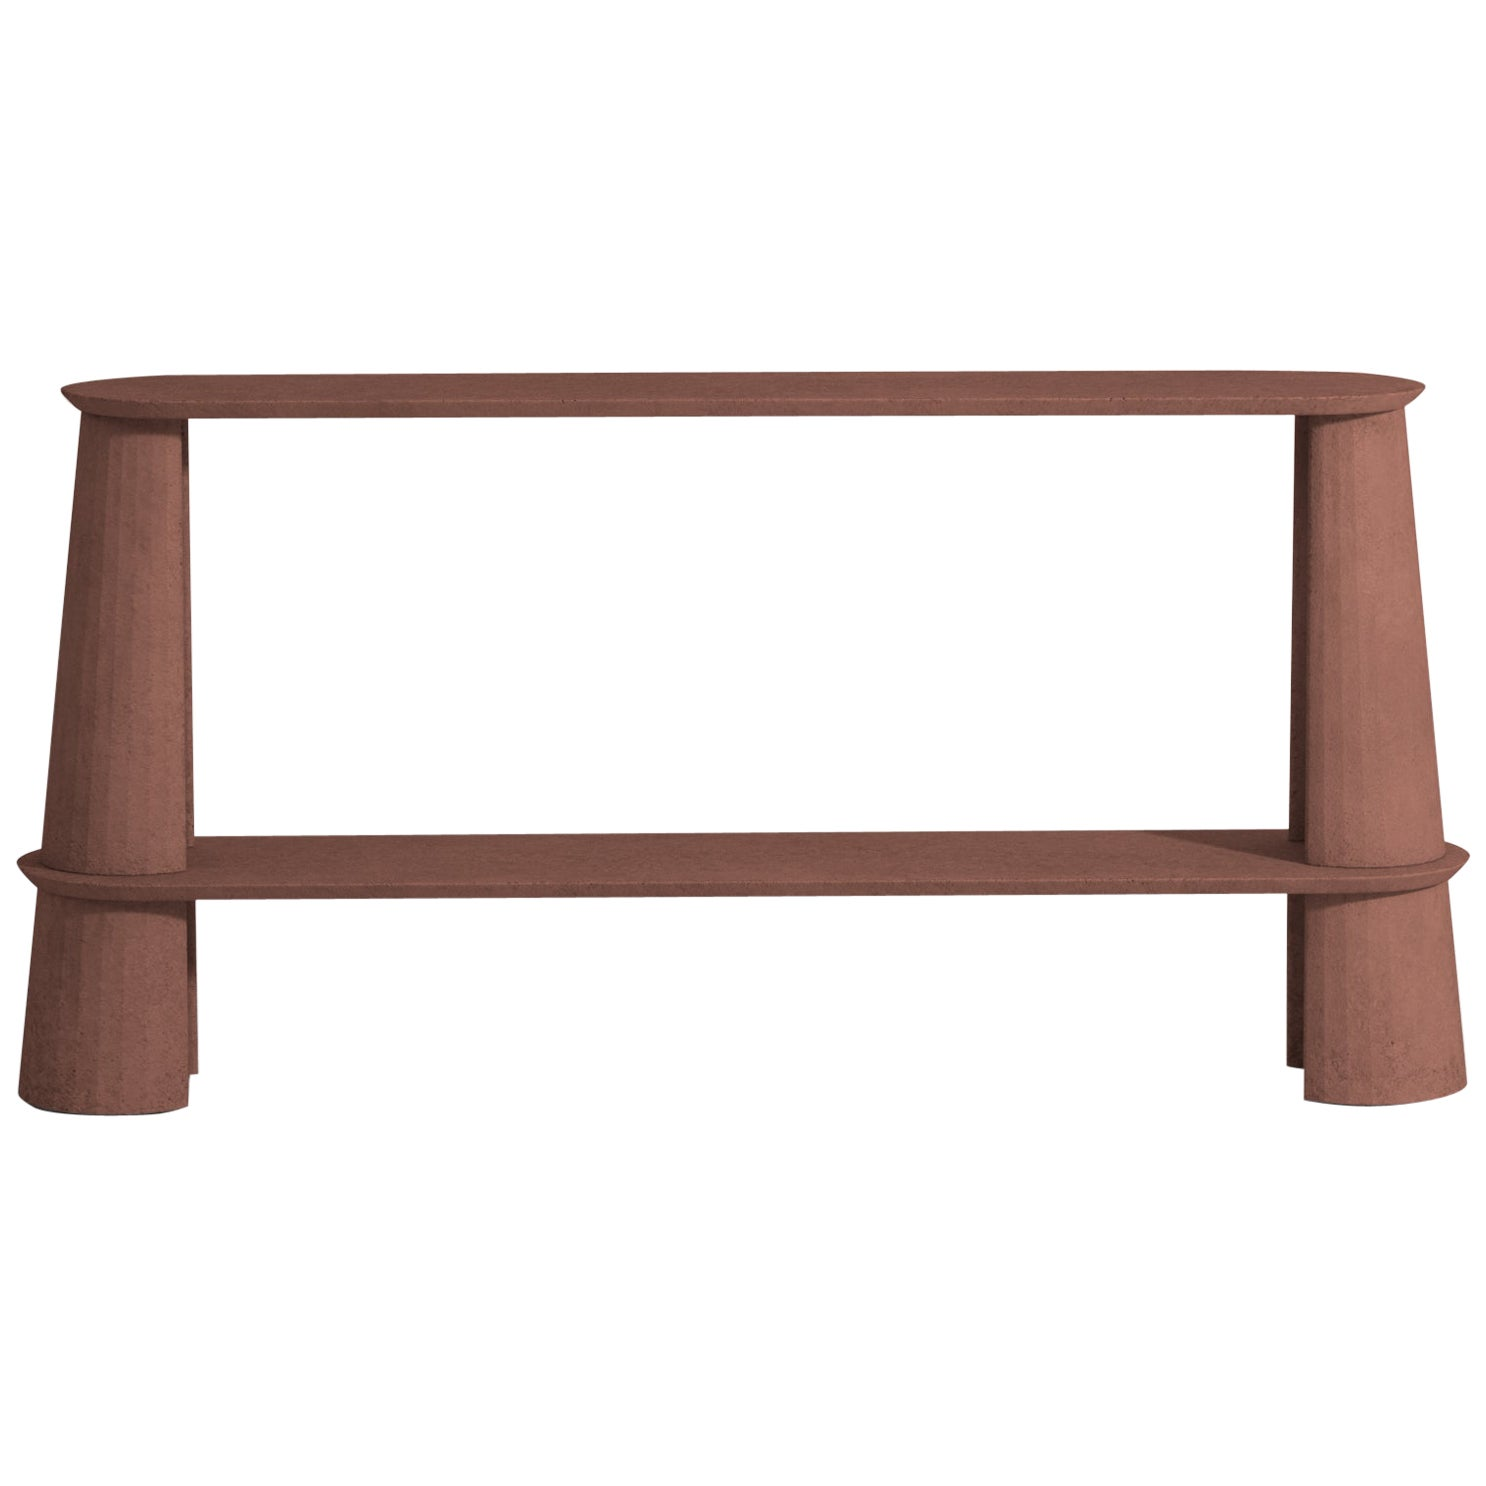 21st Century Studio Irvine Fusto Side Console Table Concrete Cement Brick Red